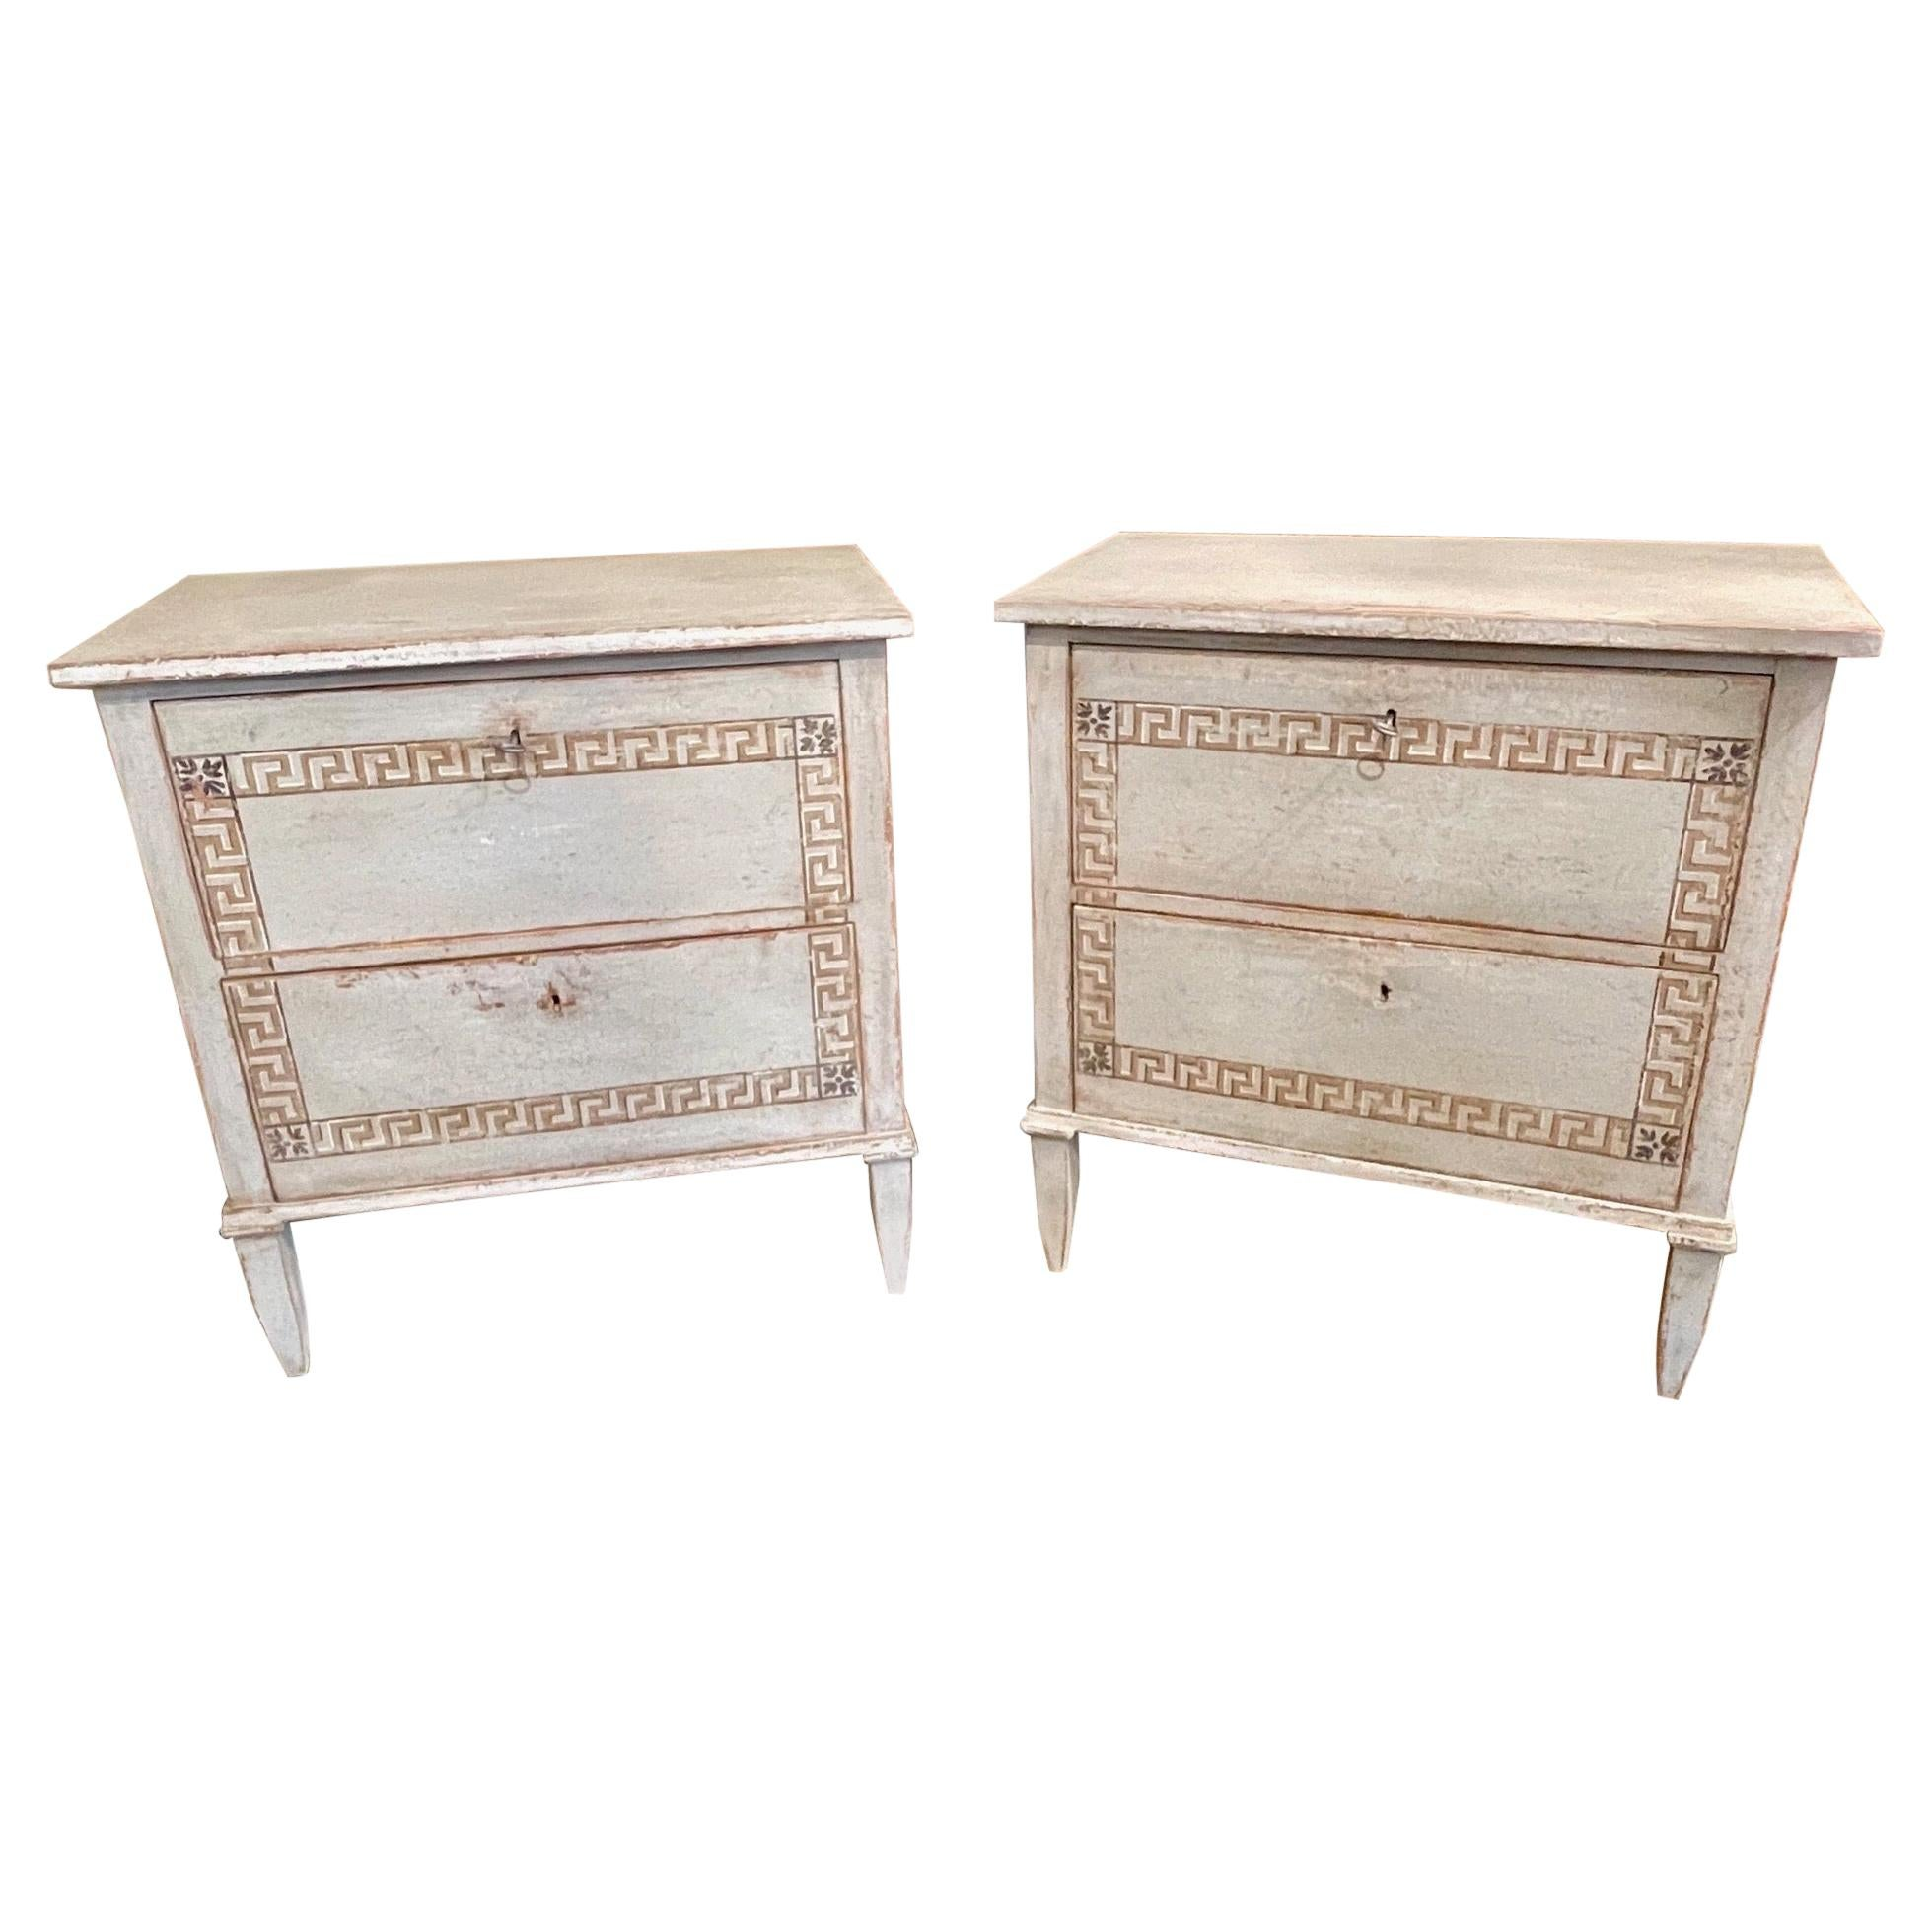 Pair of French Neo-Classical Bed Side Chests with Greek Key Design